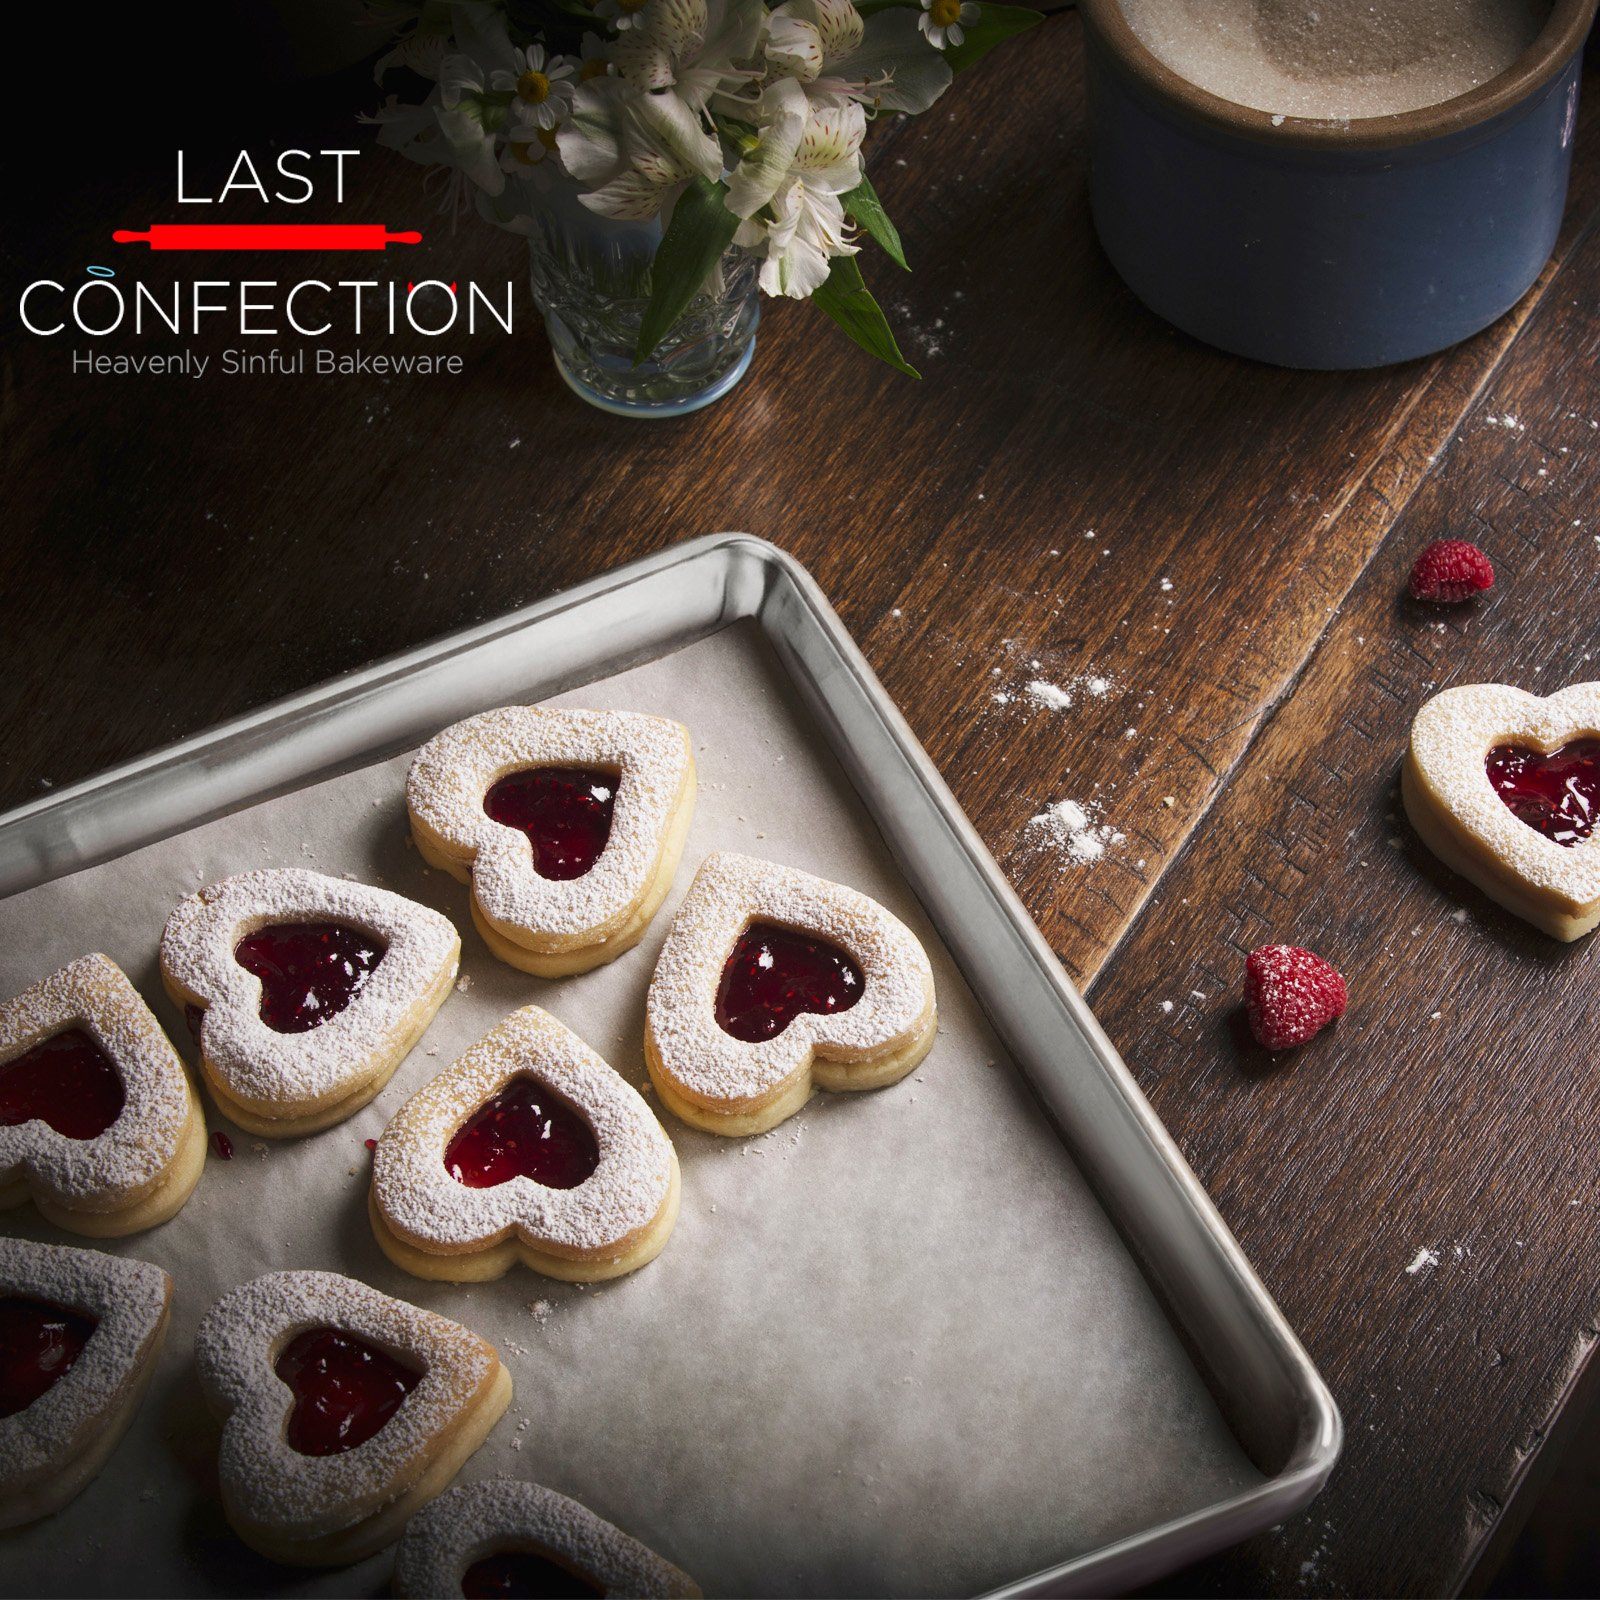 Last Confection 6 Cookie Baking Sheets 13'' x 18'' - Rimmed Aluminum Jelly Roll Trays - Half Sheet Pans by Last Confection (Image #6)